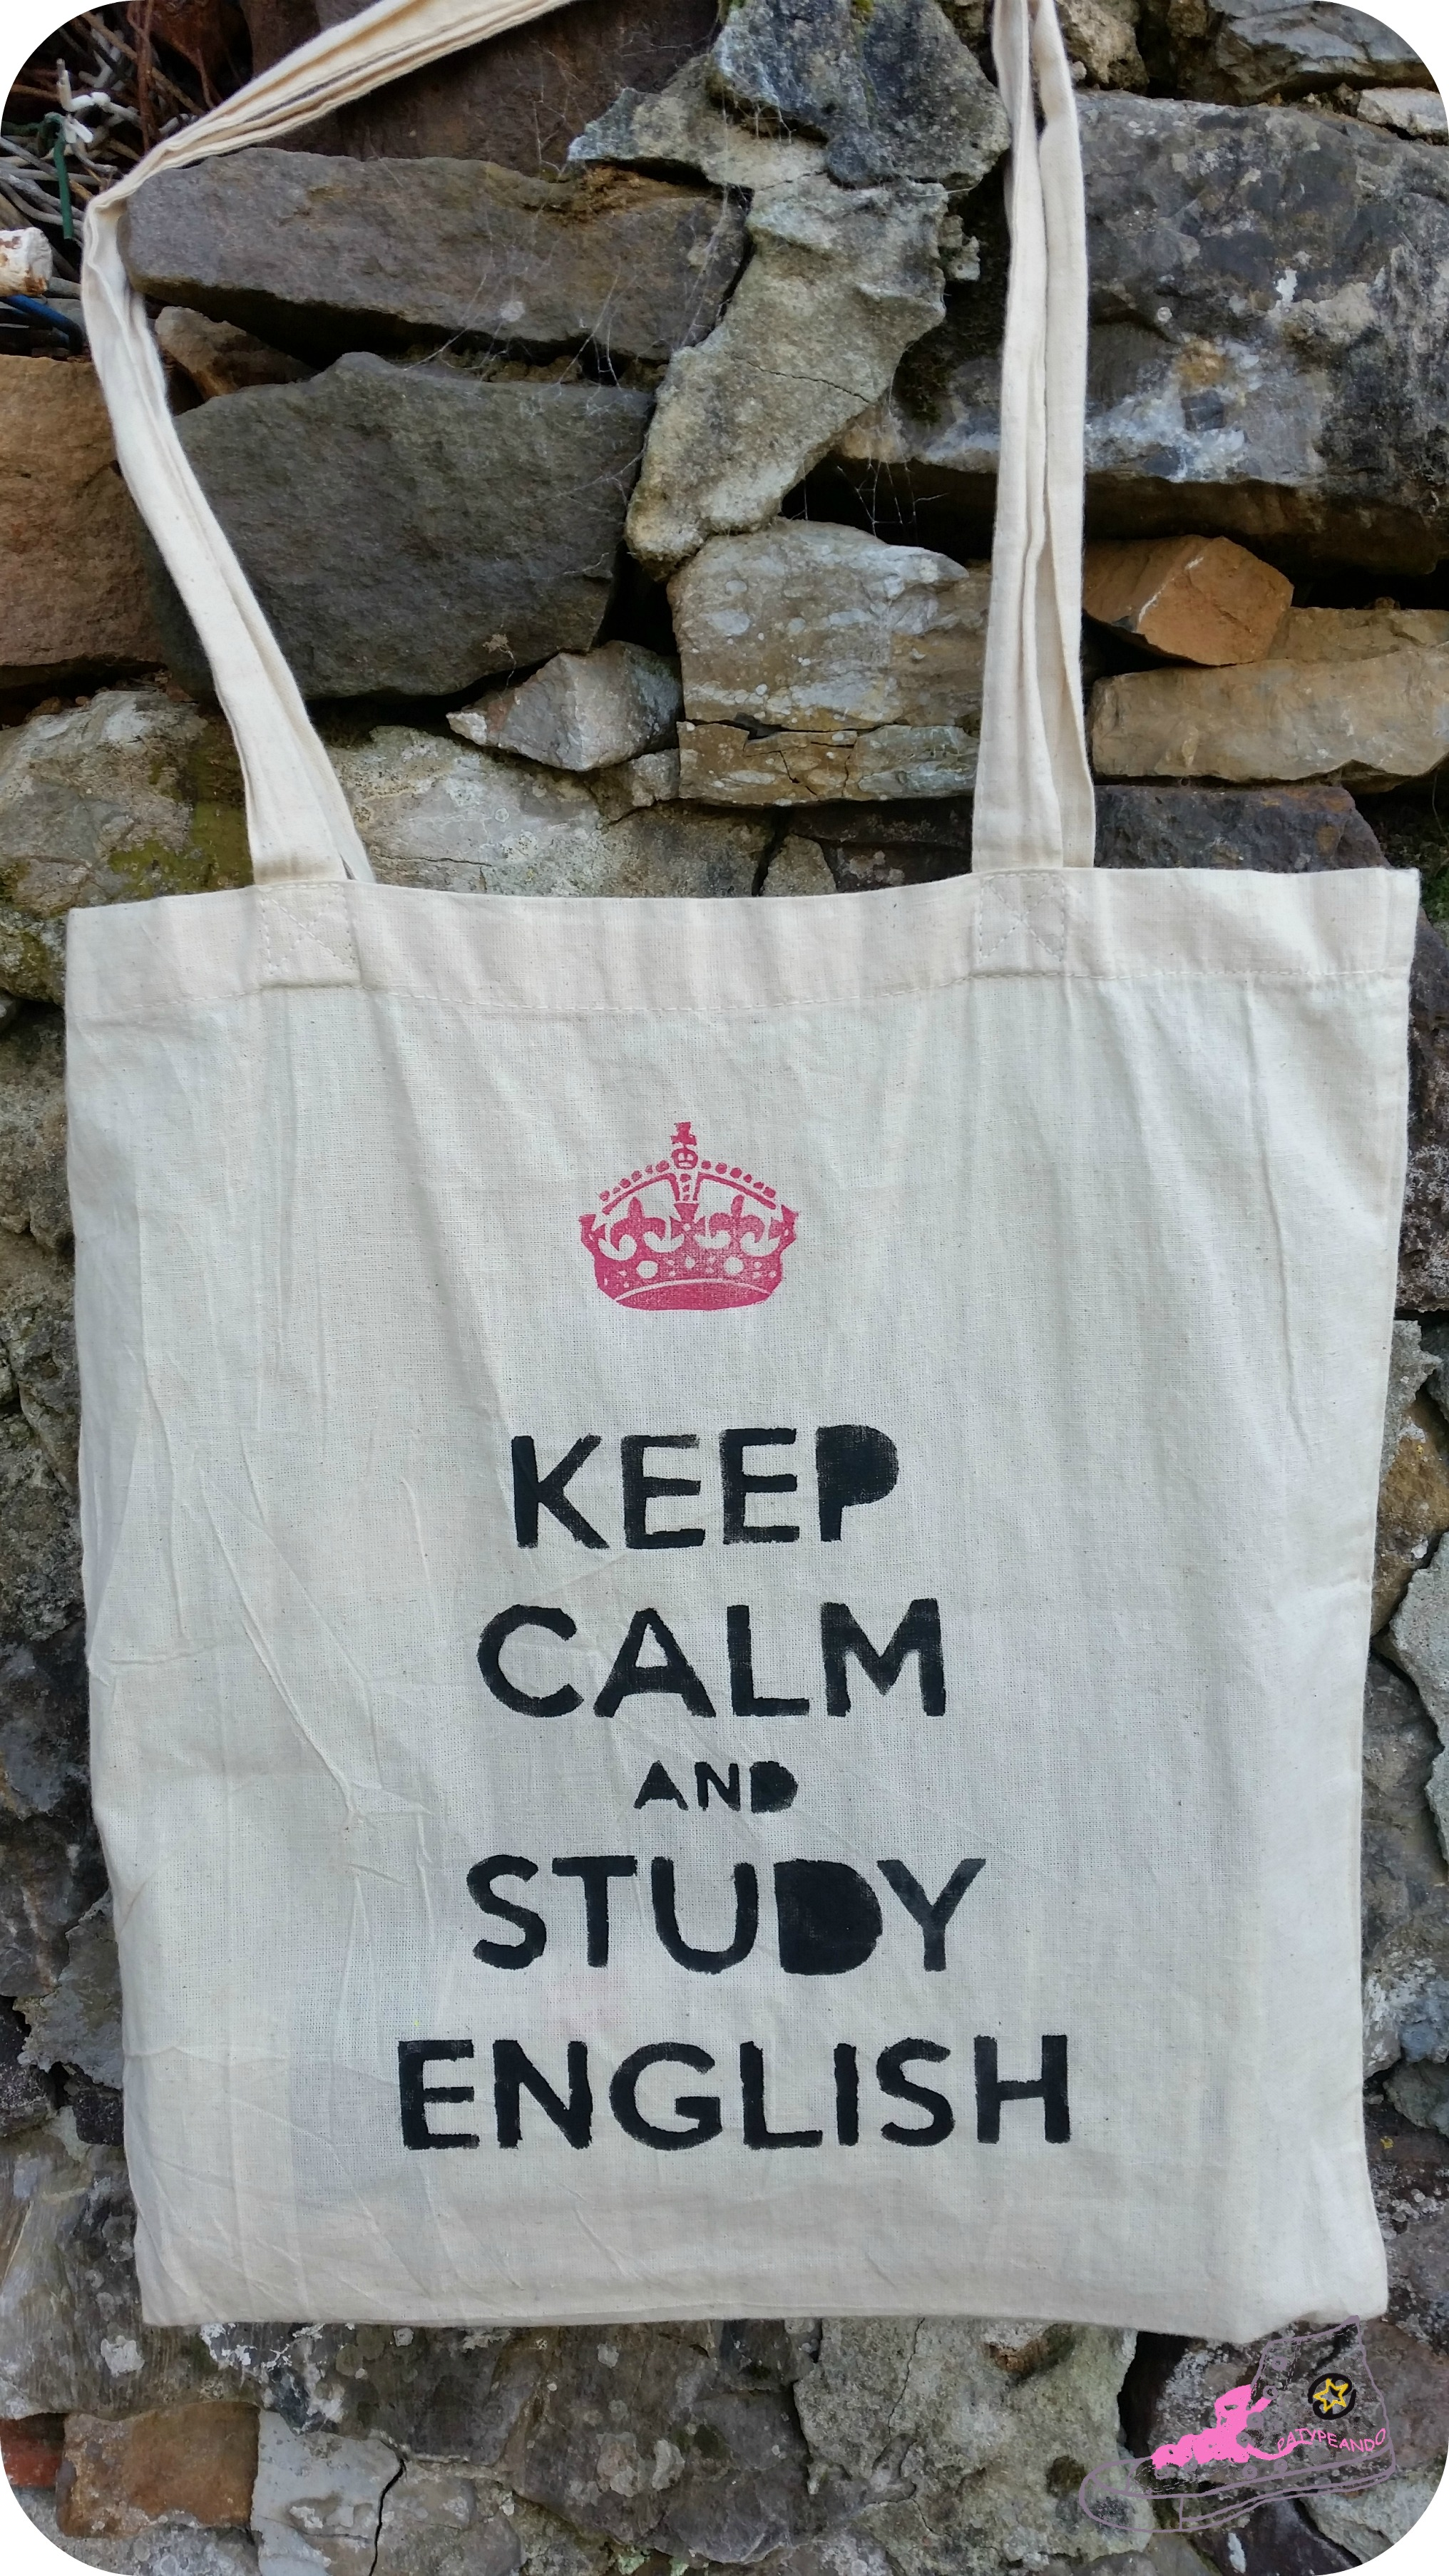 mensaje en tote bag keep calm